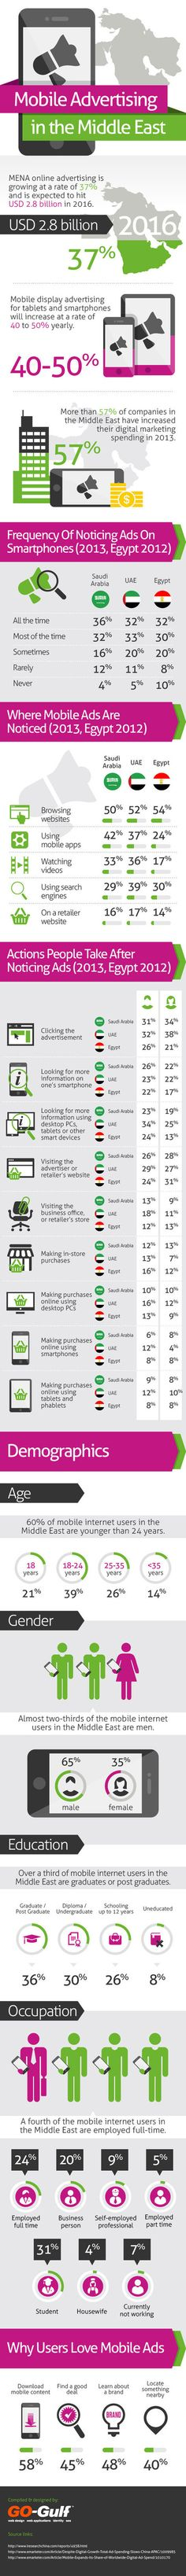 Mobile Advertising in the Middle East – Statistics and Trends